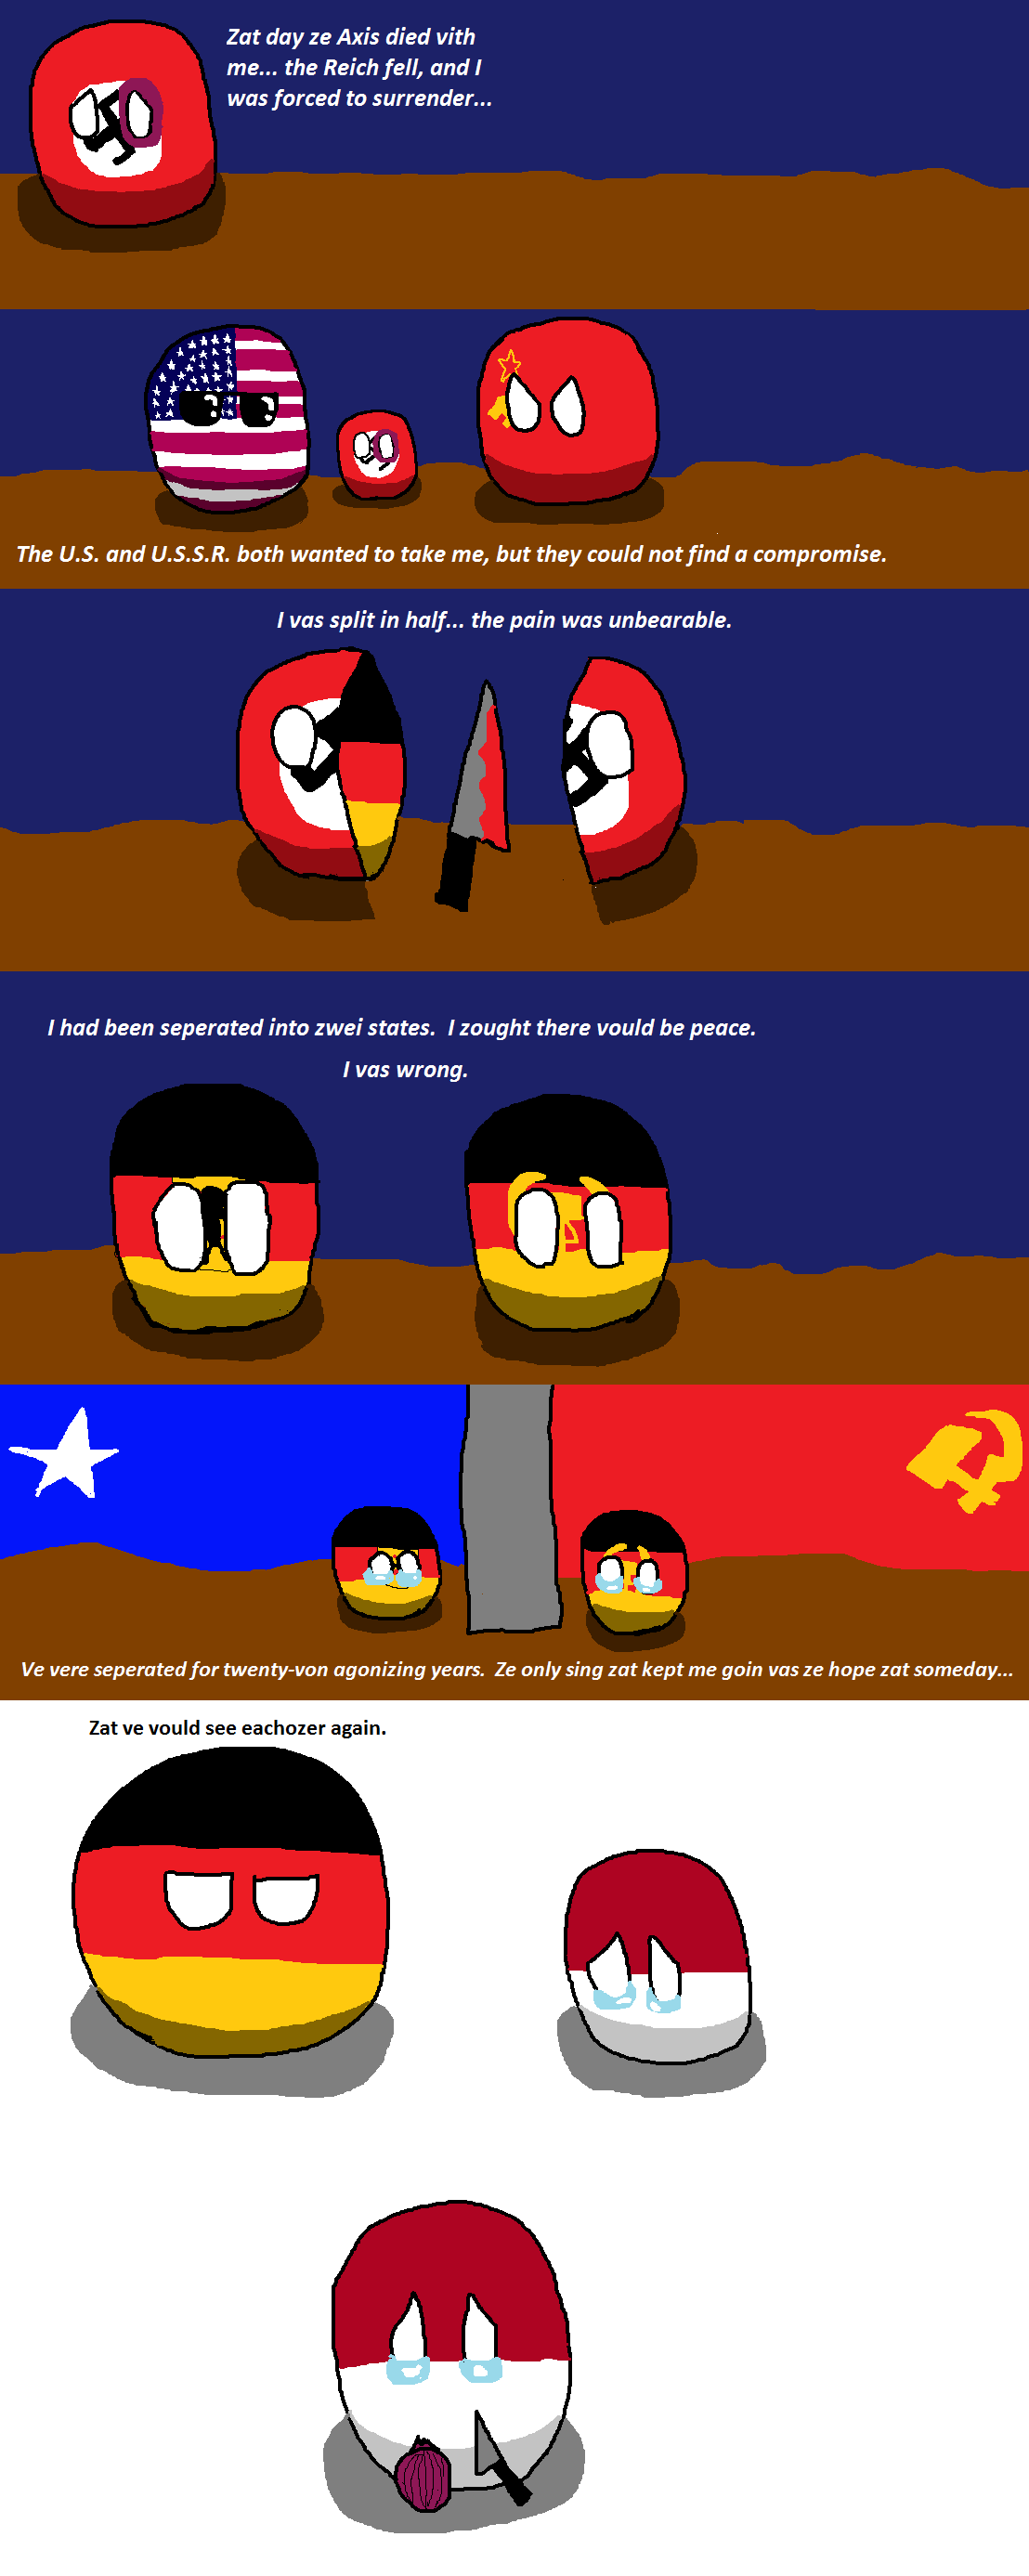 Germany's Story